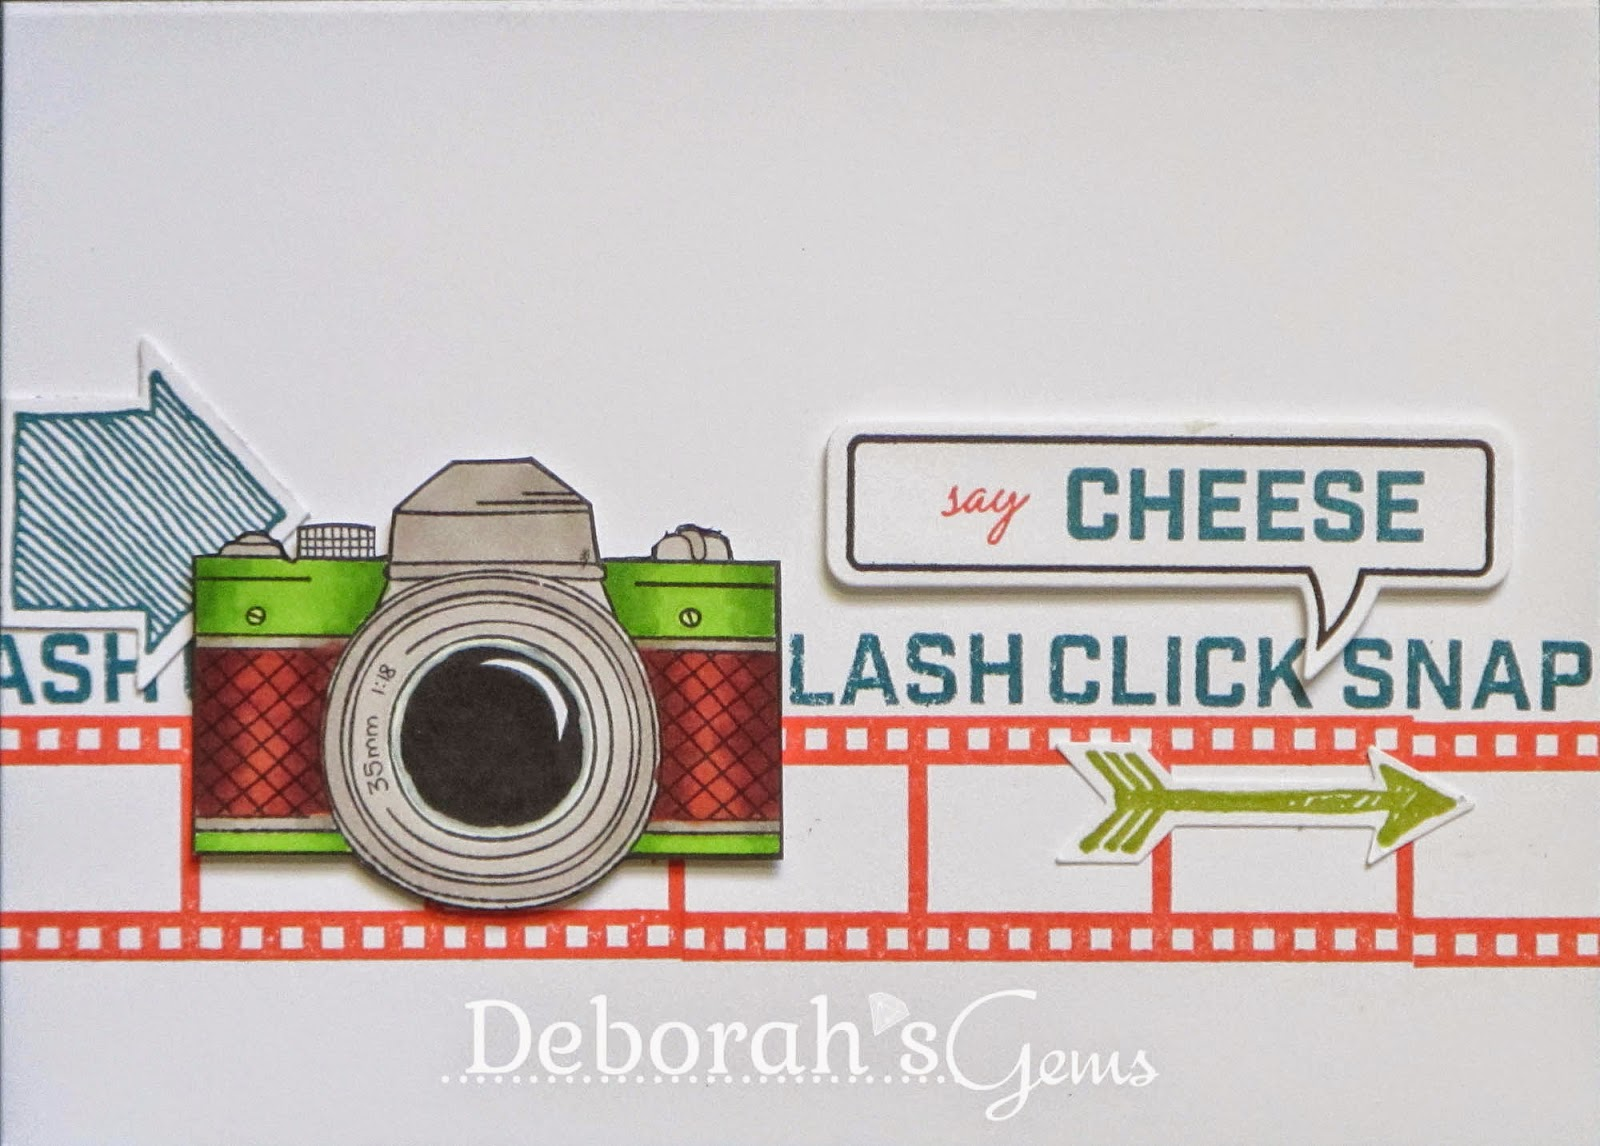 Say Cheese - photo by Deborah Frings - Deborah's Gems